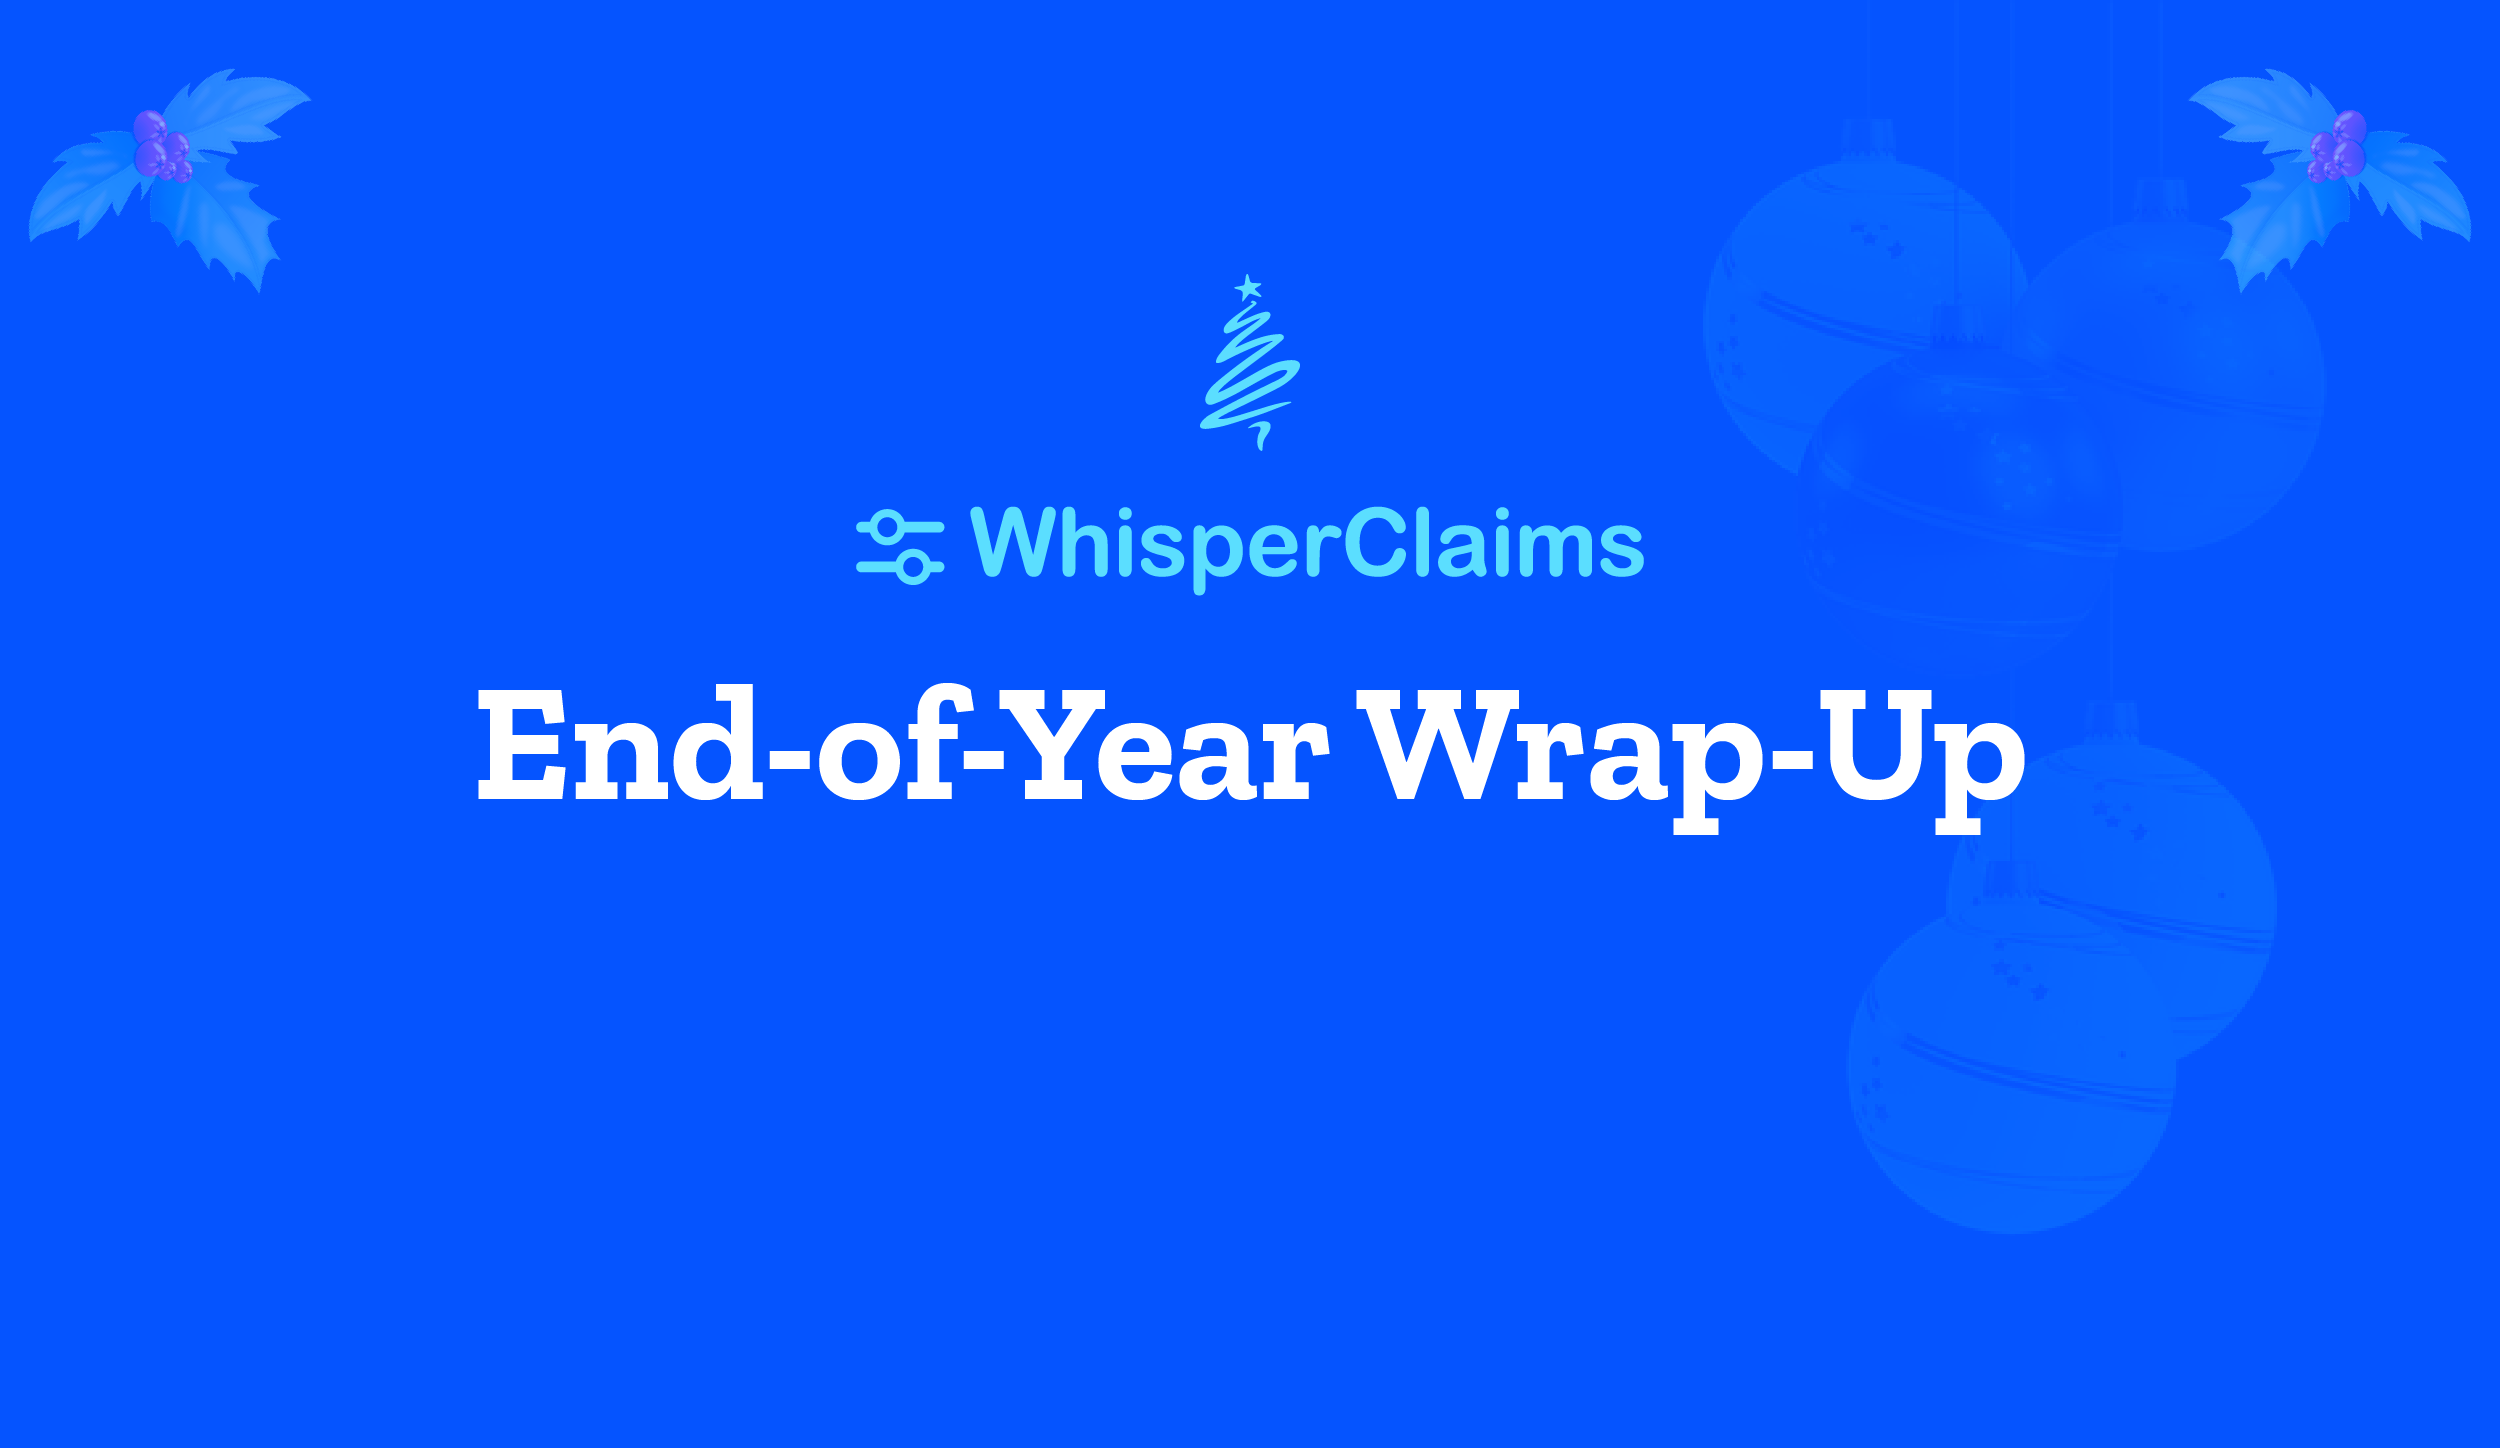 WhisperClaims End of Year Wrap Up 2020